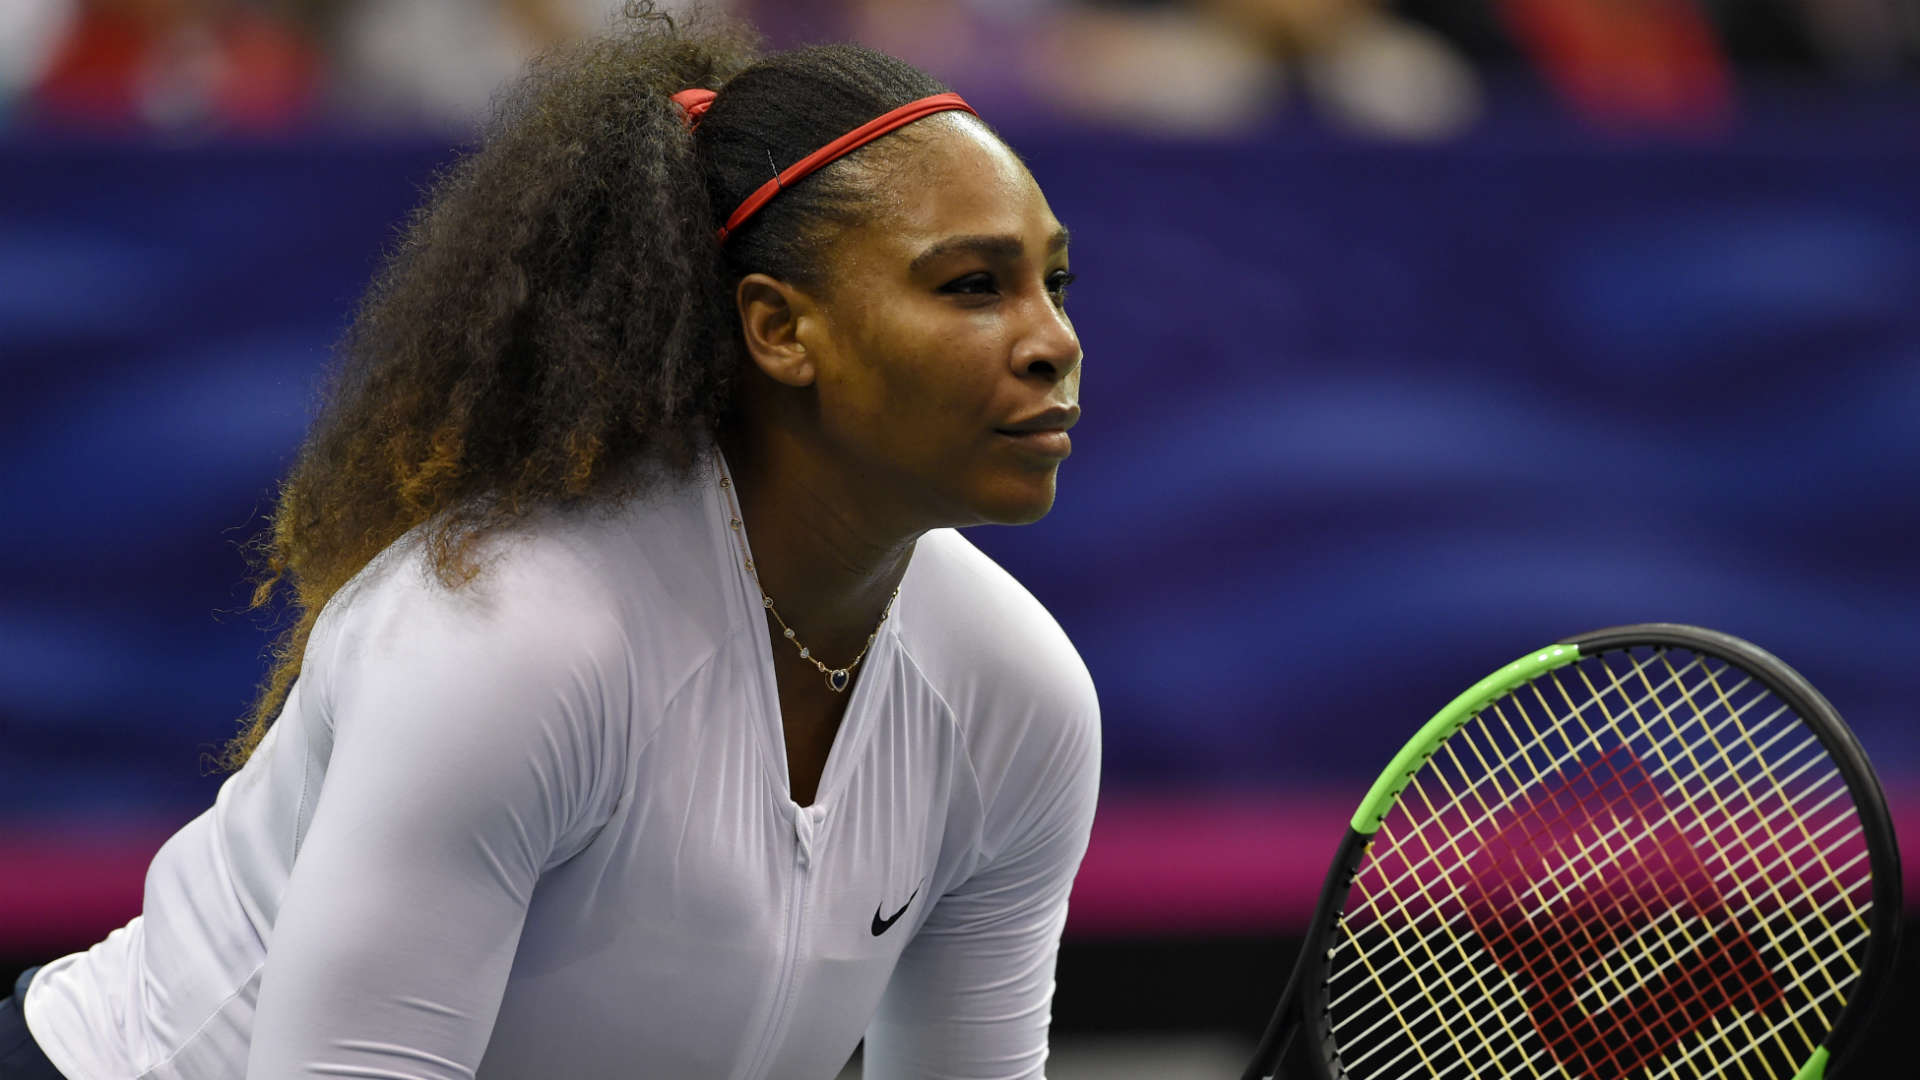 Serena Williams Will Face Zarina Diyas in Comeback Match at Indian Wells